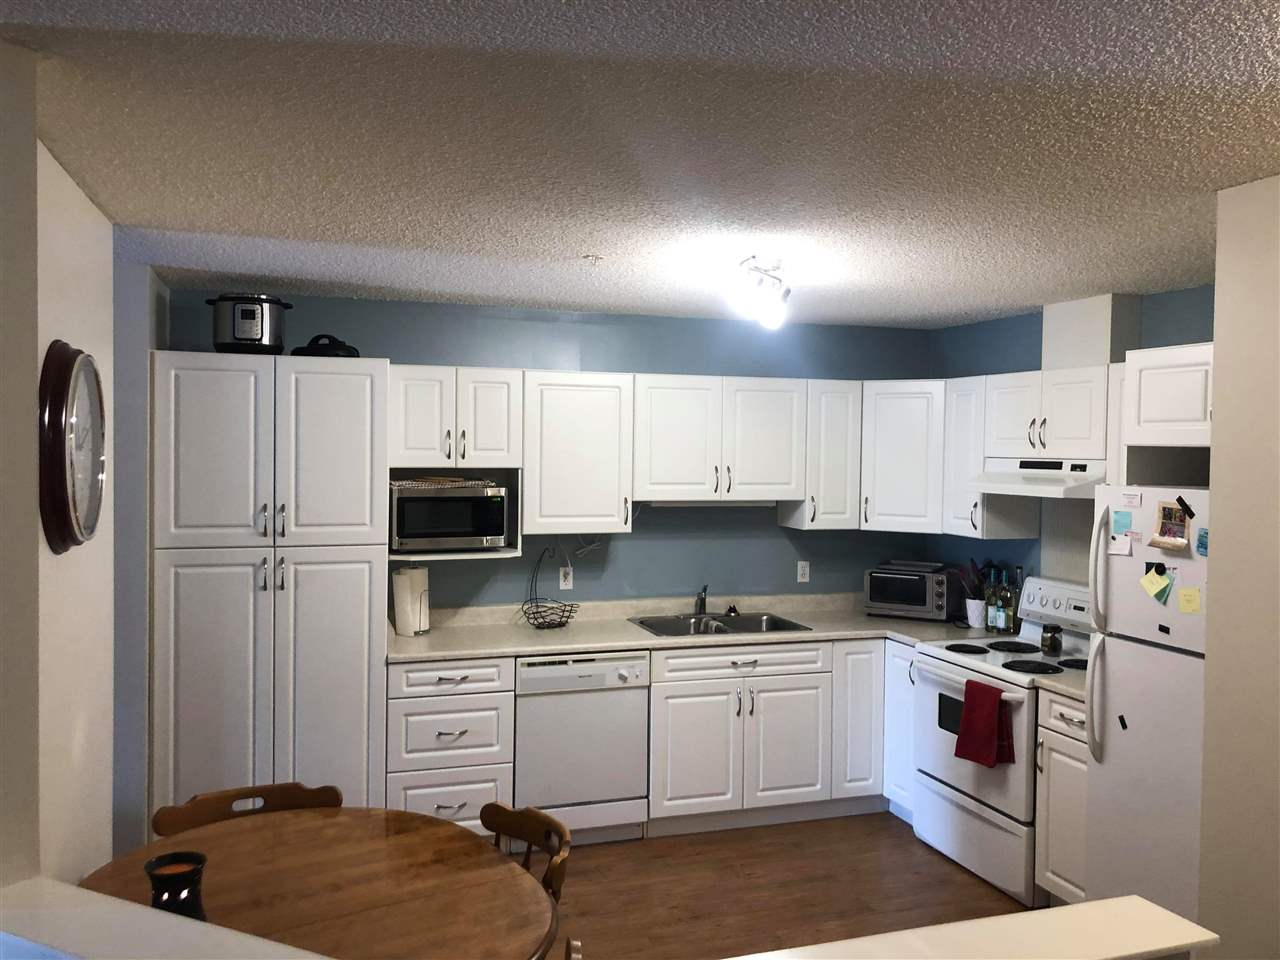 Amazing location for Professionals working downtown or Students going to NAIT, GR. MacEwan or the U of A!  Central Location backing onto Queen Mary Park. This freshly painted condo has a unique layout.  2 Bdrms, 2 Bathrooms.  A large kitchen with newer fresh, white cabinetry, with tons of storage & a large pantry, and open to the Breakfast Nook.  A large living room overlooking the nicely sized south facing balcony with additional locked storage.  Never pay for laundry again with IN-suite laundry and a brand new Washer.  All this with one Titled Parking Stall.